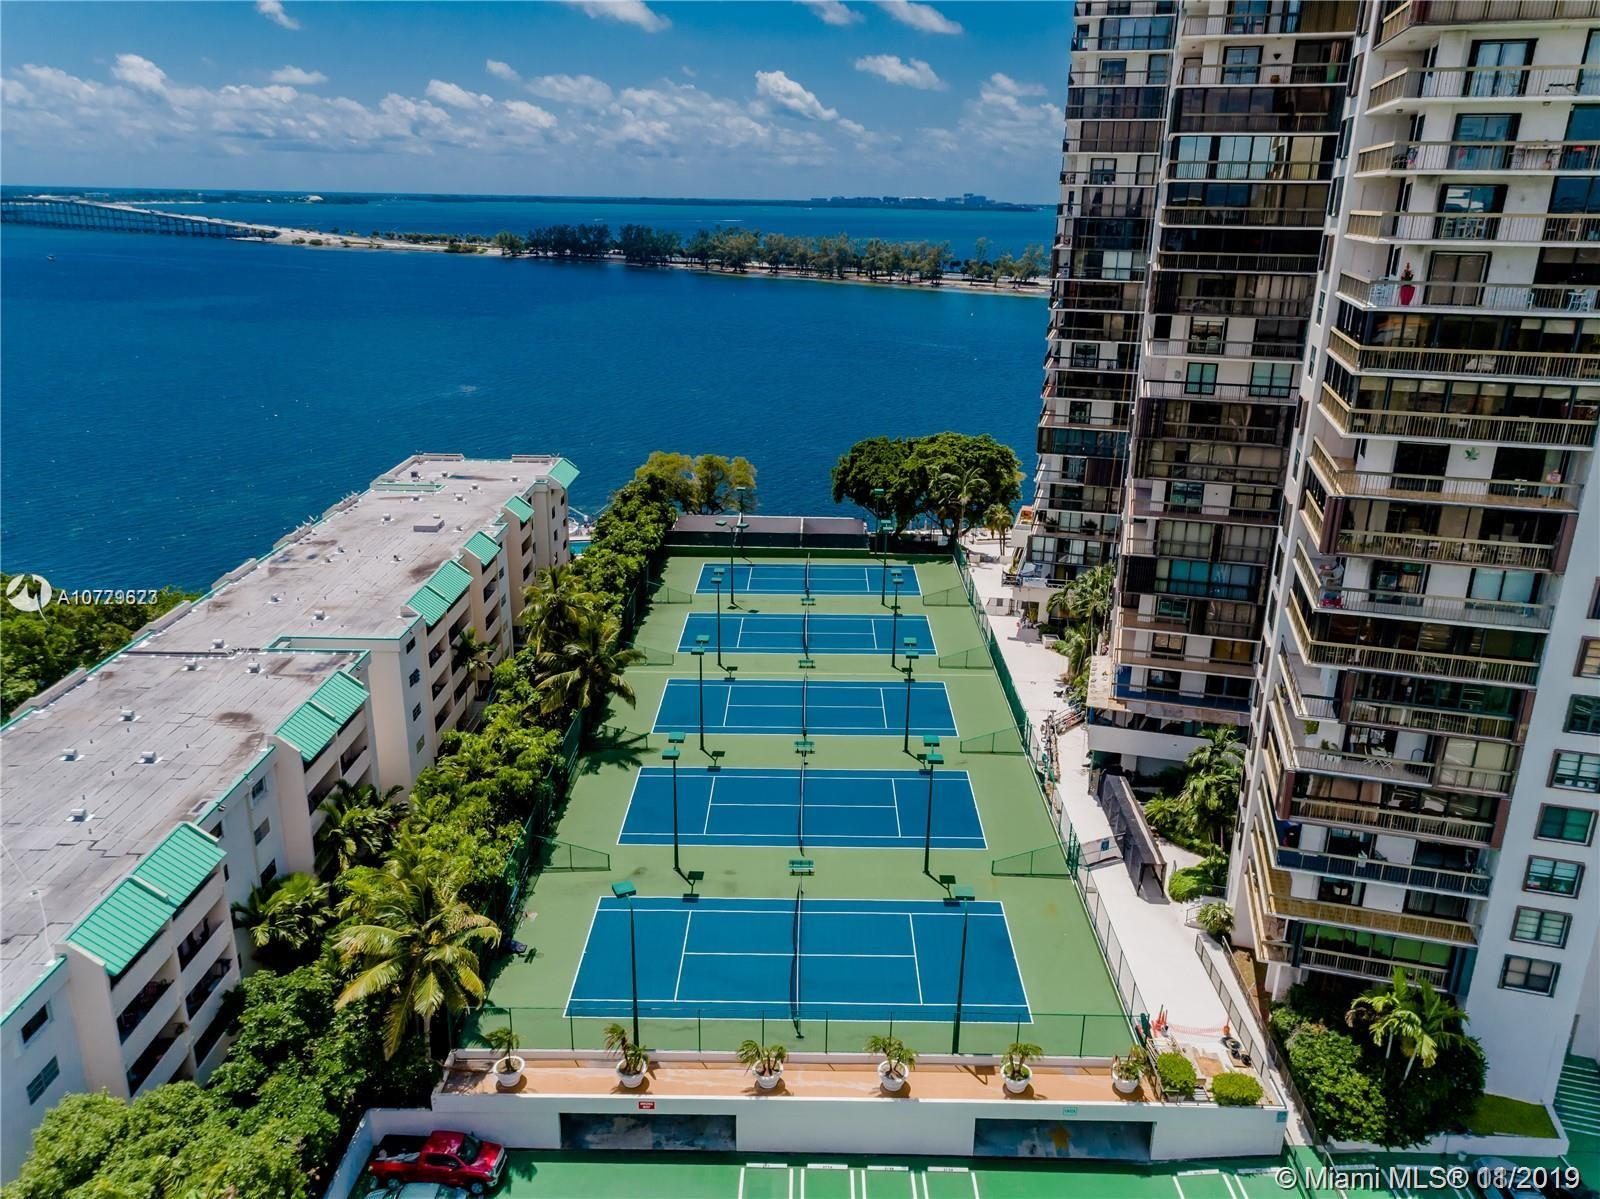 Brickell Bay Club image #34